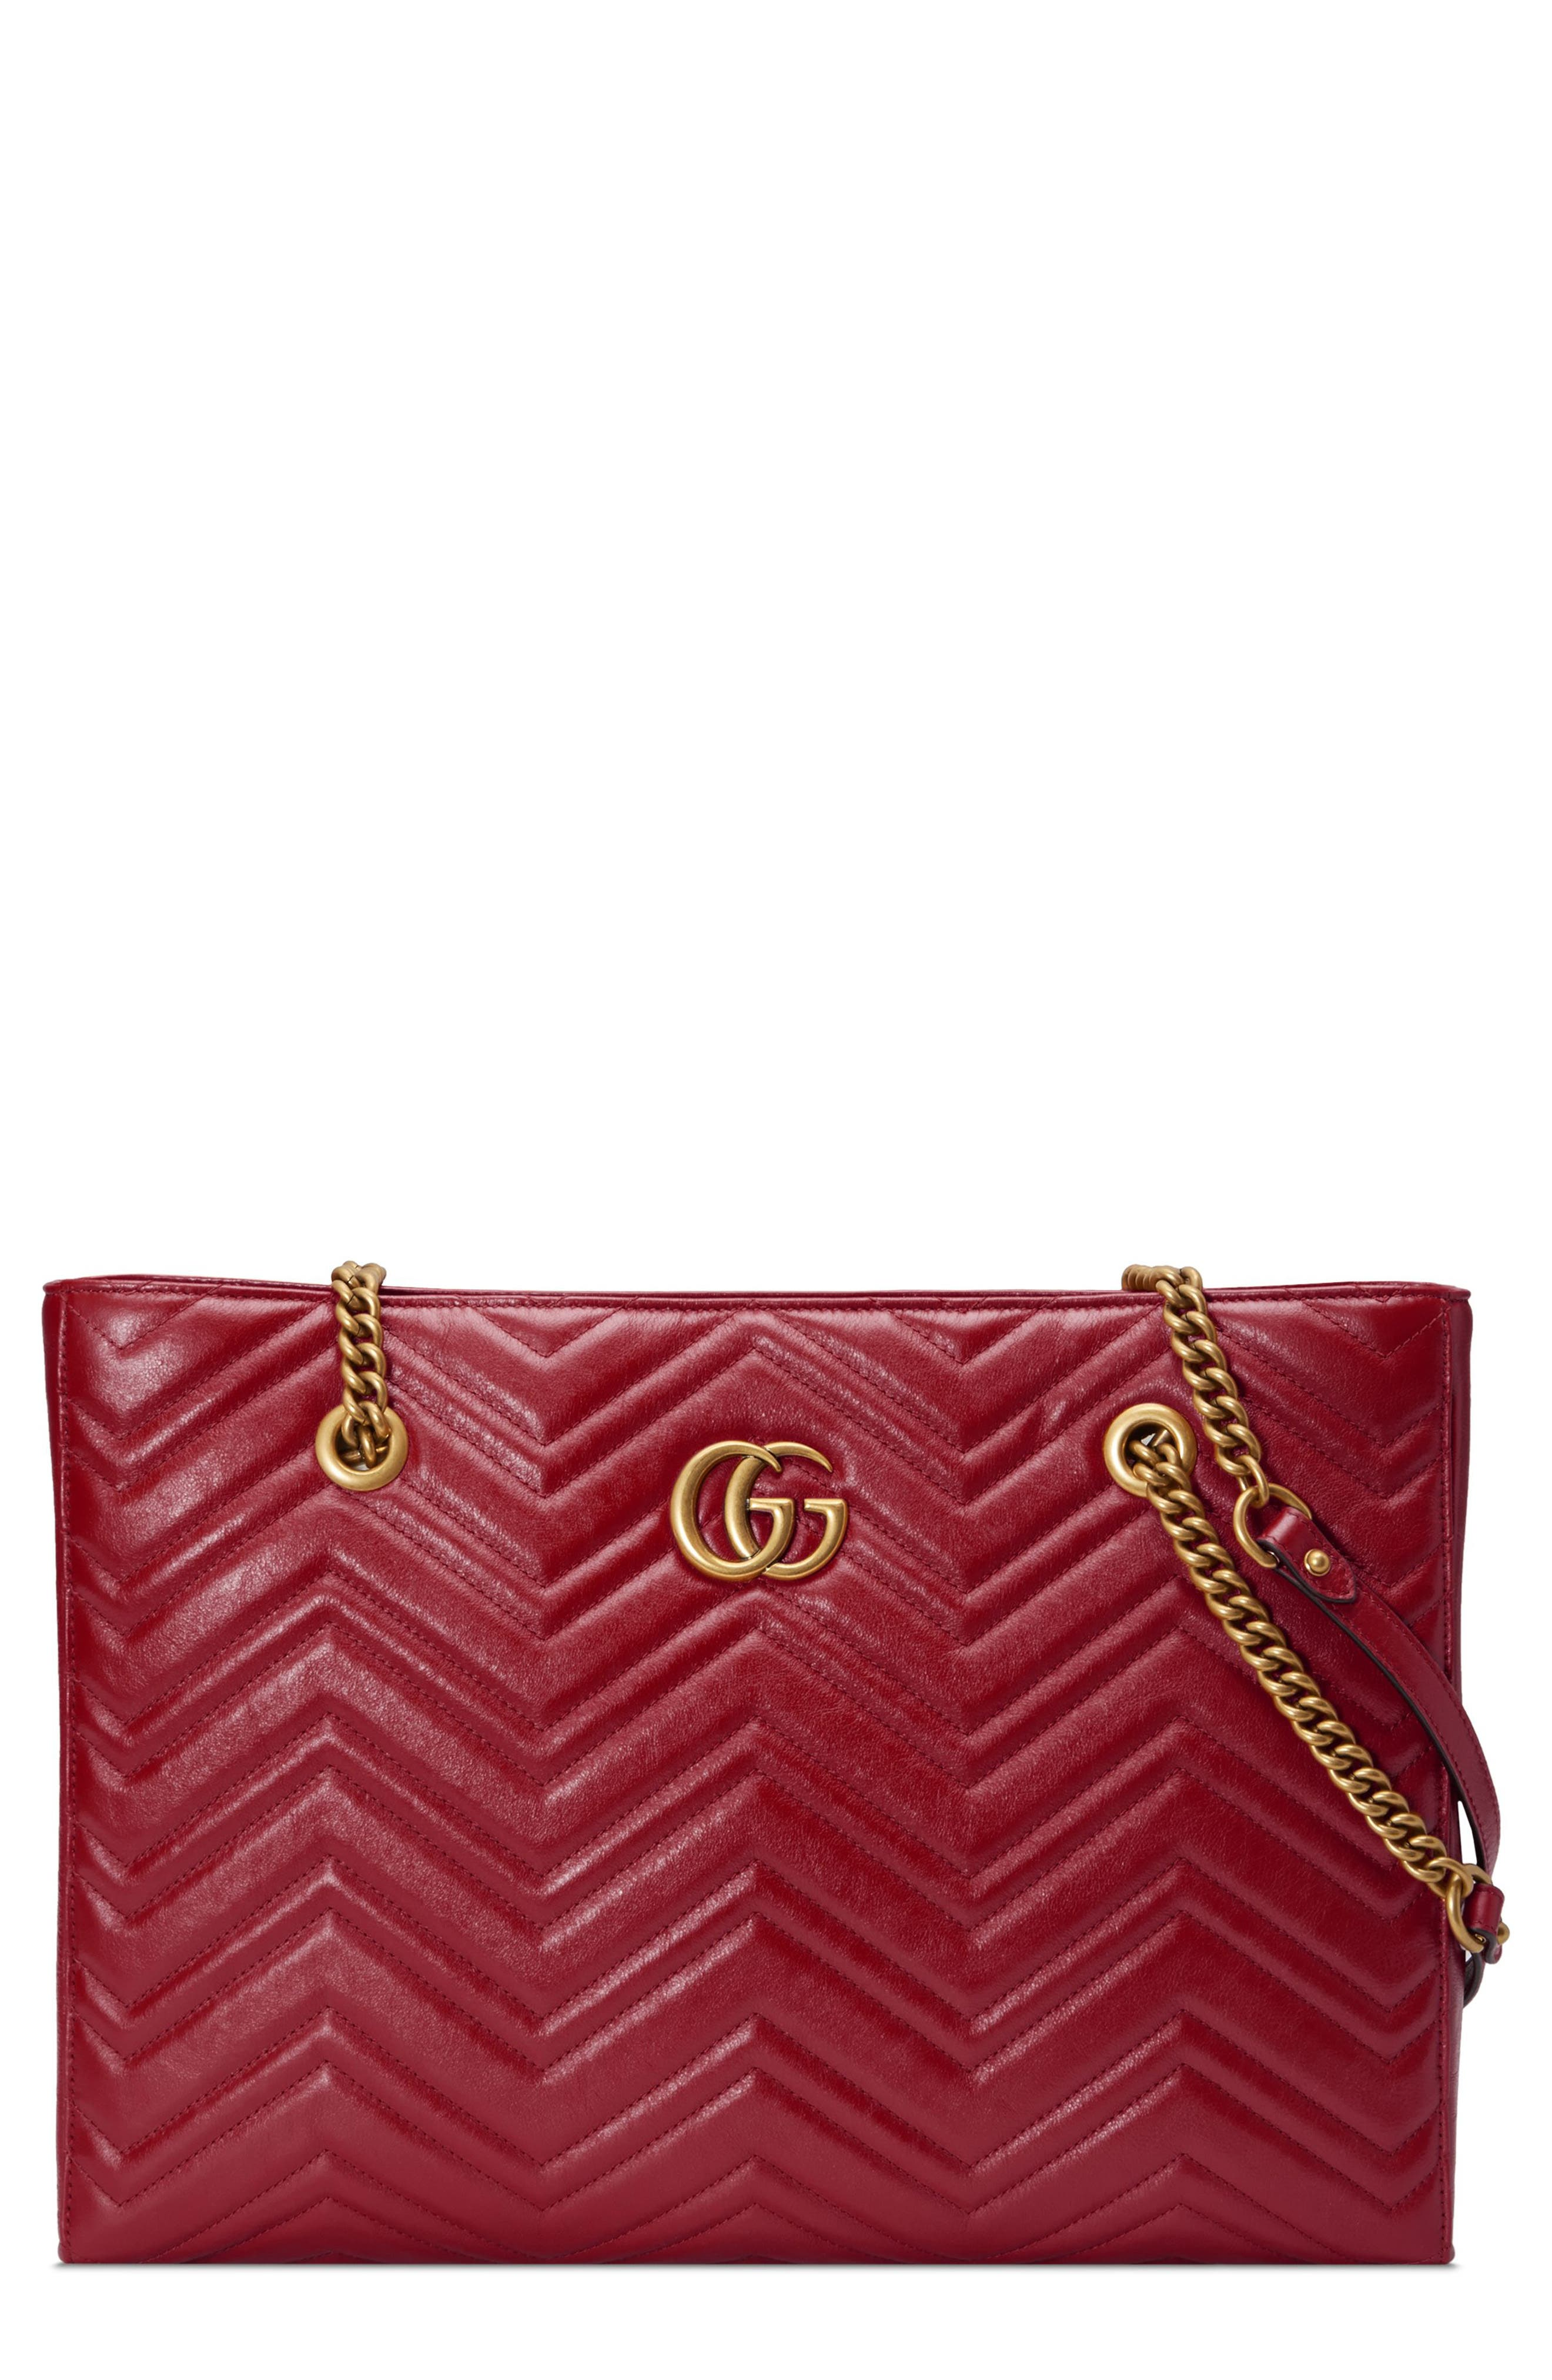 GG Marmont 2.0 Matelassé Medium Leather East/West Tote Bag,                         Main,                         color, CERISE/ CERISE